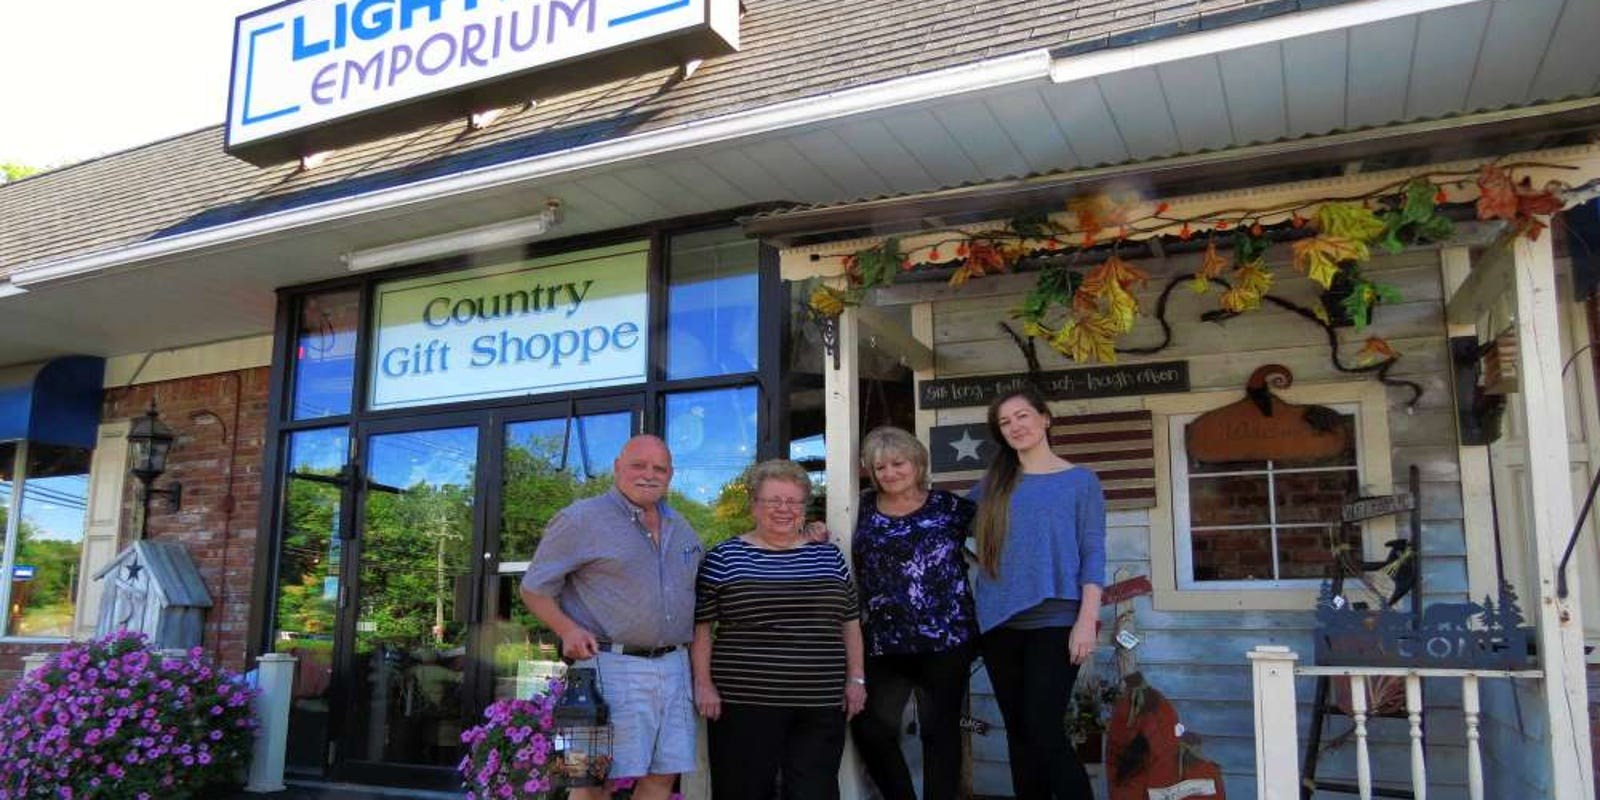 For 27 Years Emporium In Ringwood Has Been Wowing Customers